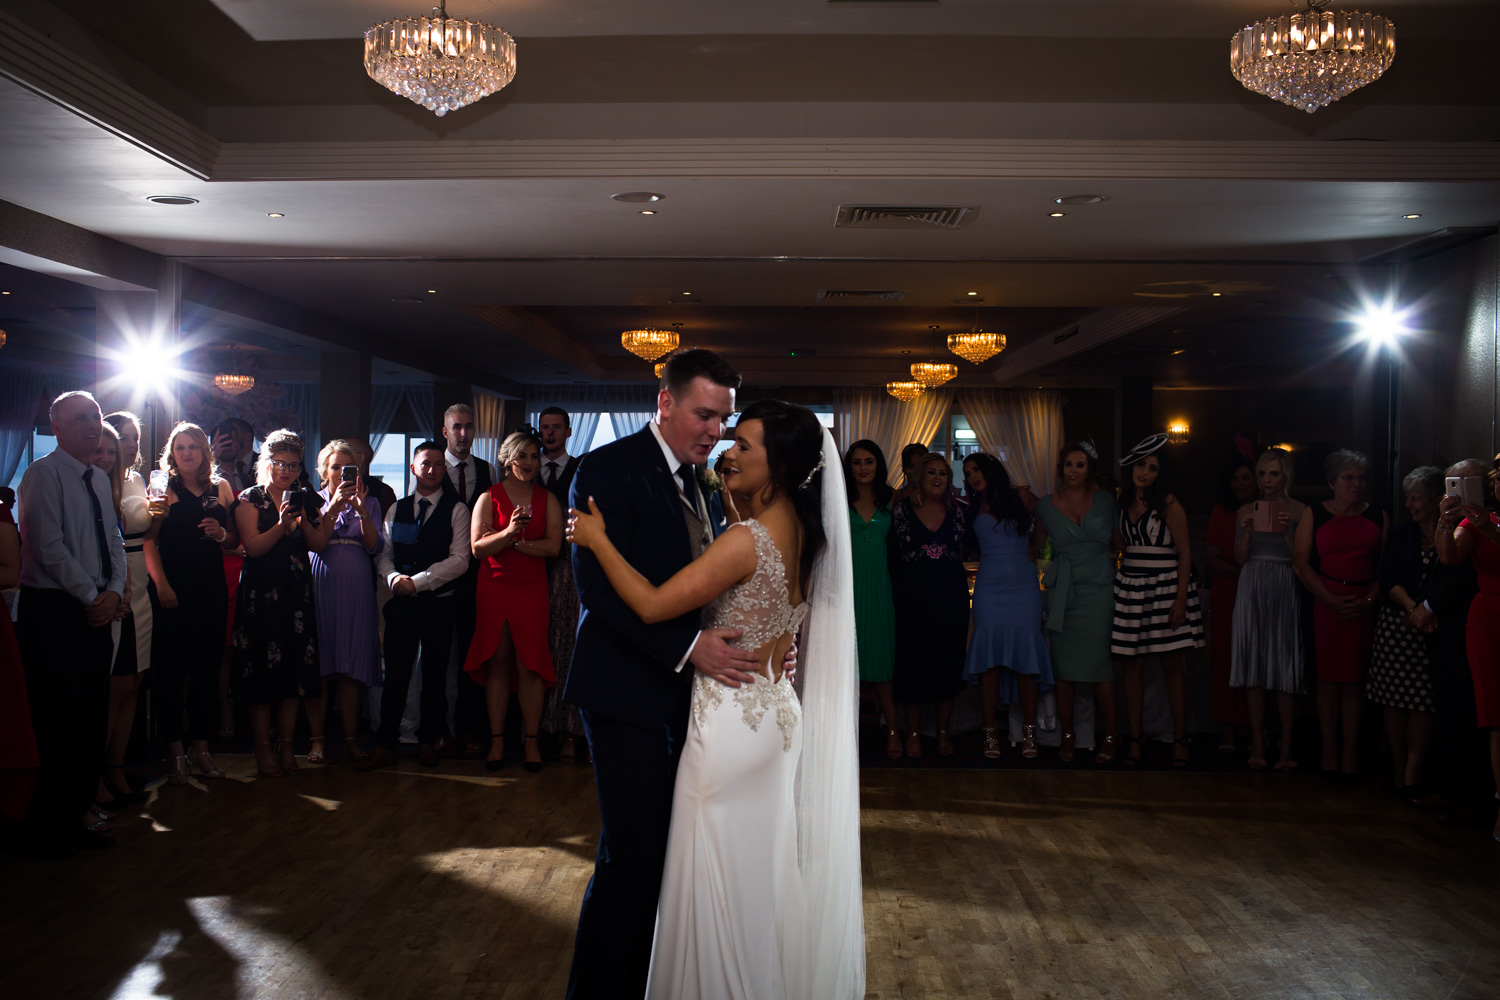 Mark_Barnes_Northern_Ireland_wedding_photographer_redcastle_hotel_Donegal_Wedding_photography_Donegal_wedding_photographer-54.jpg